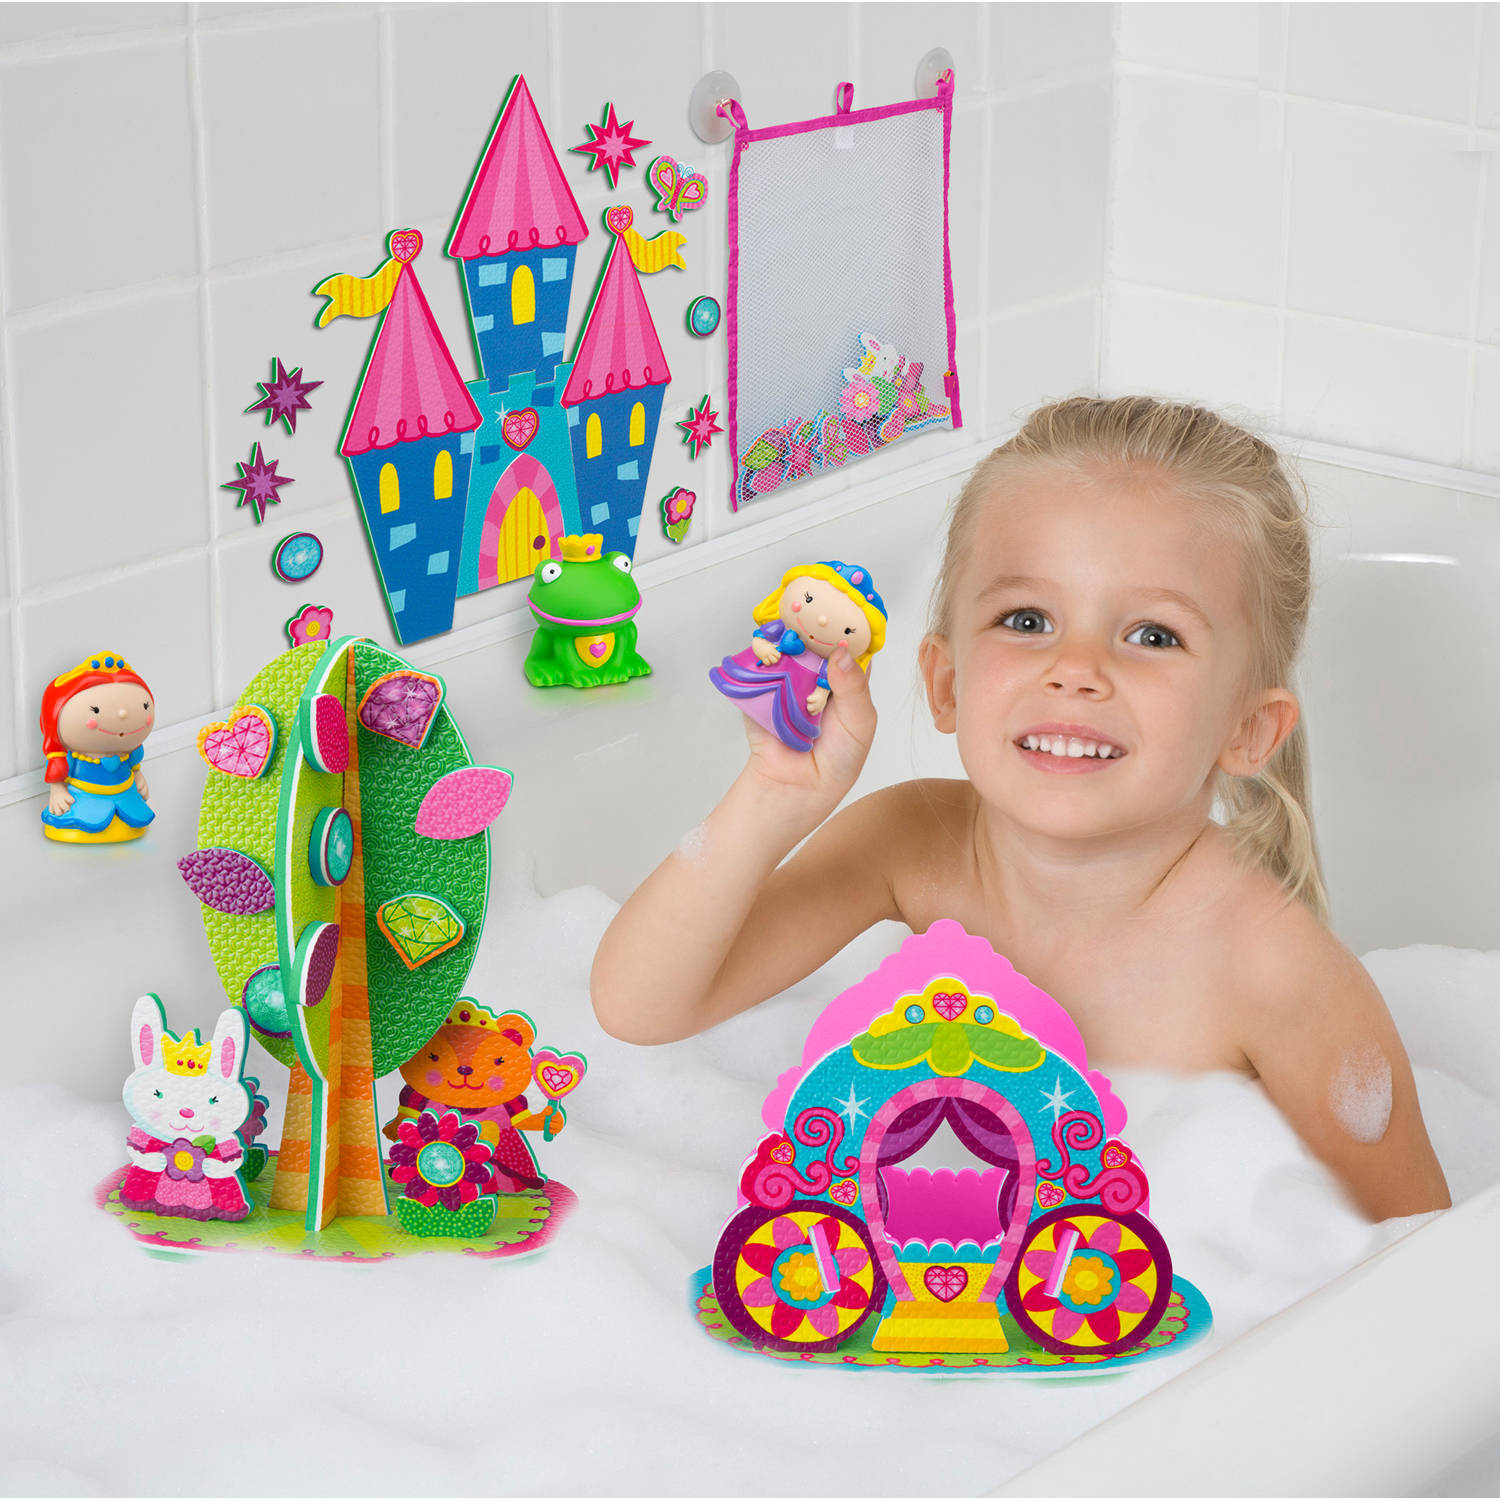 ALEX Toys Rub a Dub Princesses in the Tub Walmart